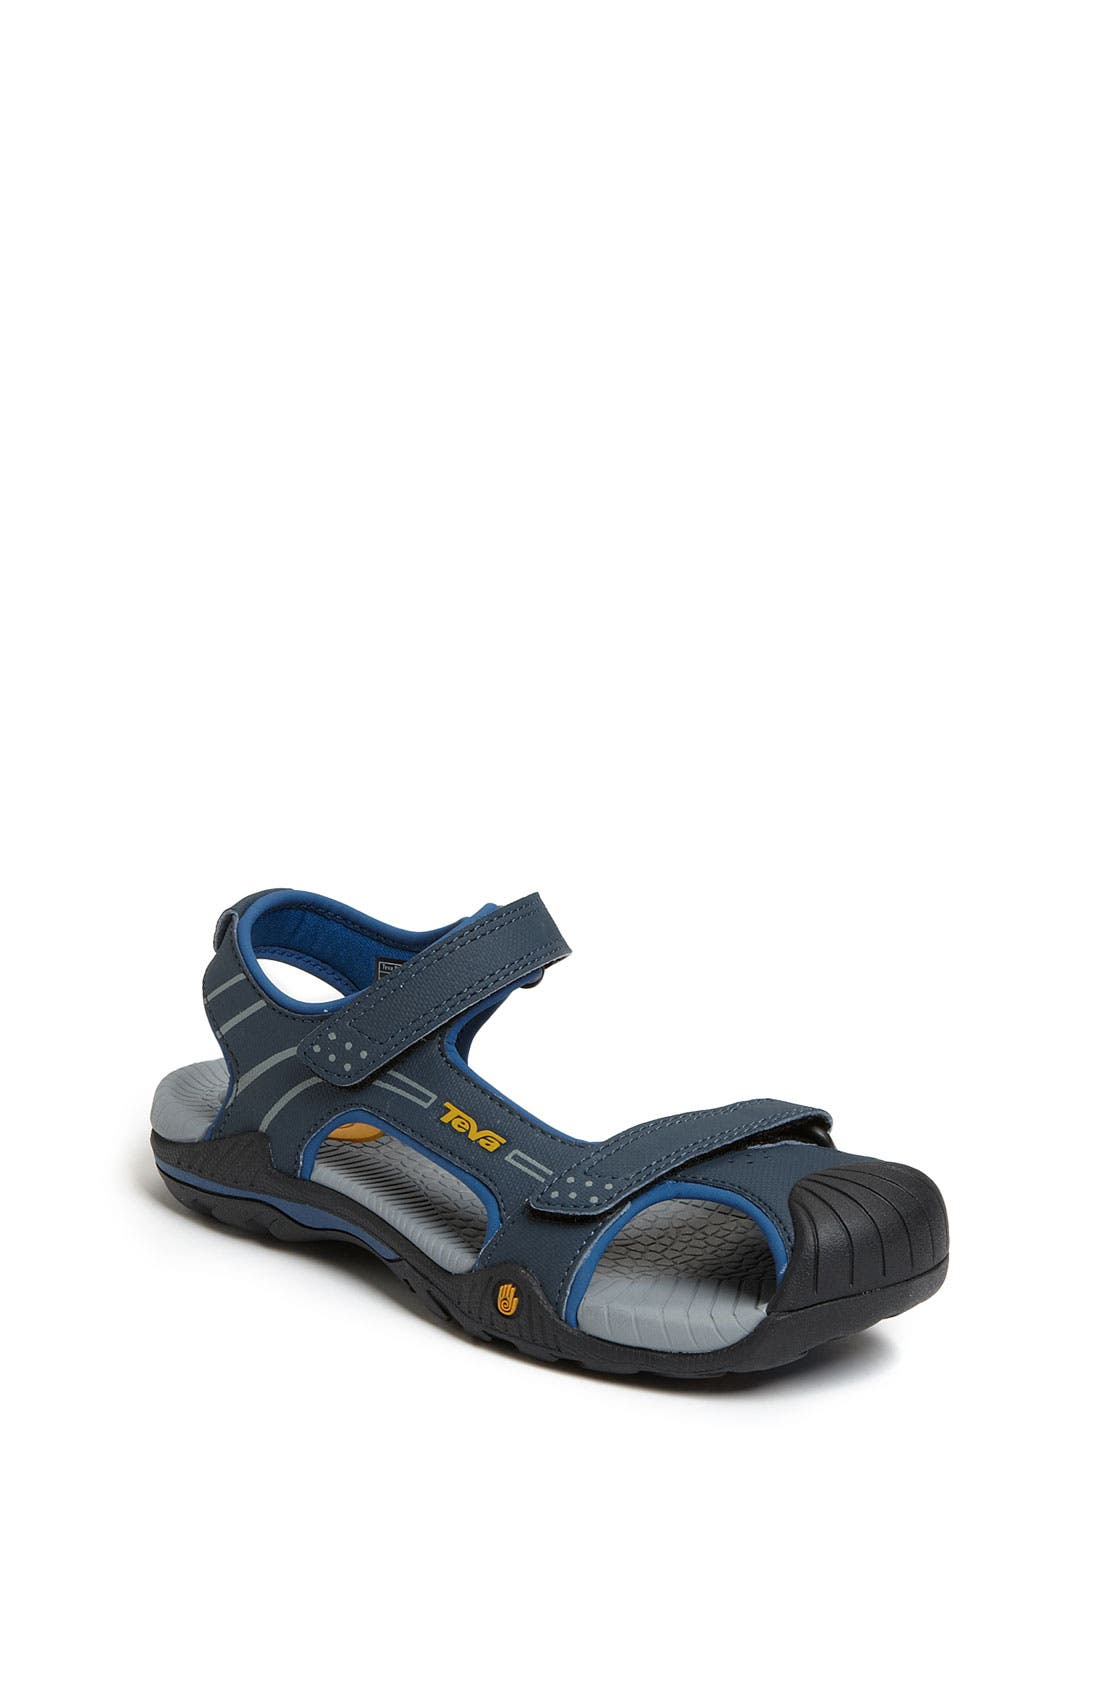 Main Image - Teva 'Toachi 2' Sandal (Toddler, Little Kid & Big Kid)